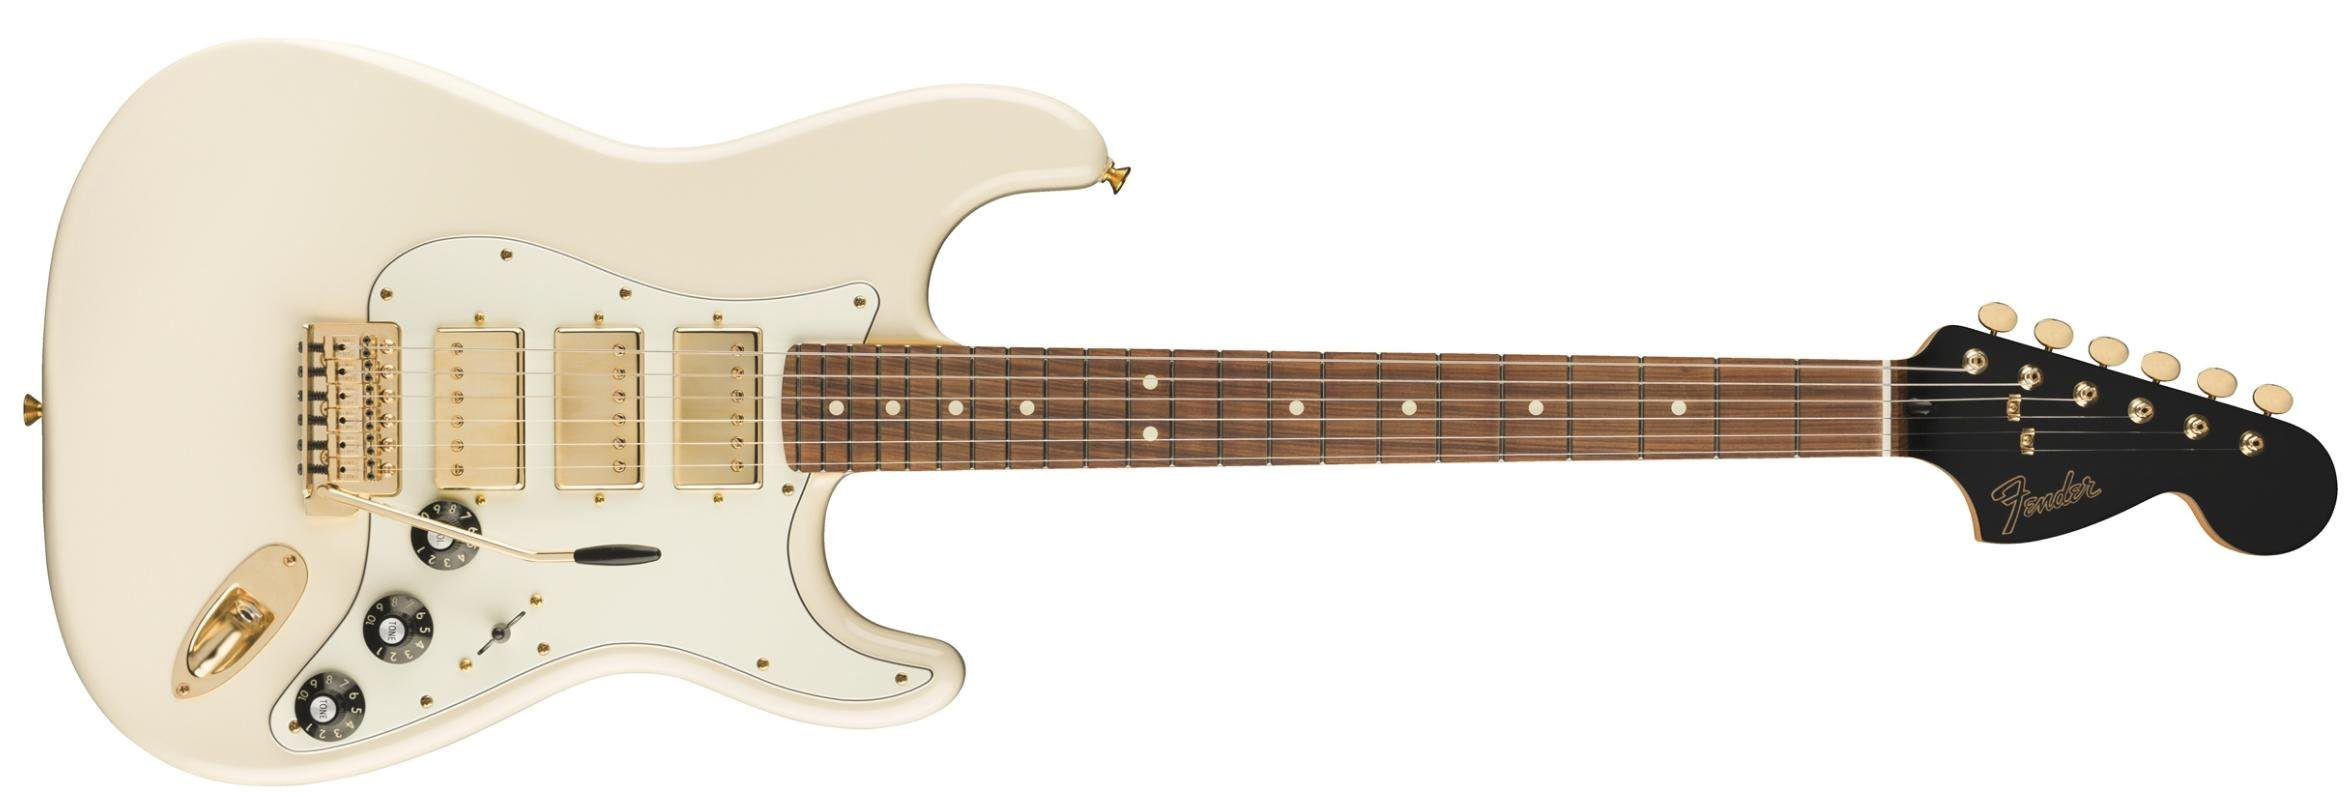 Fender Limited Blacktop Stratocaster Olympic White